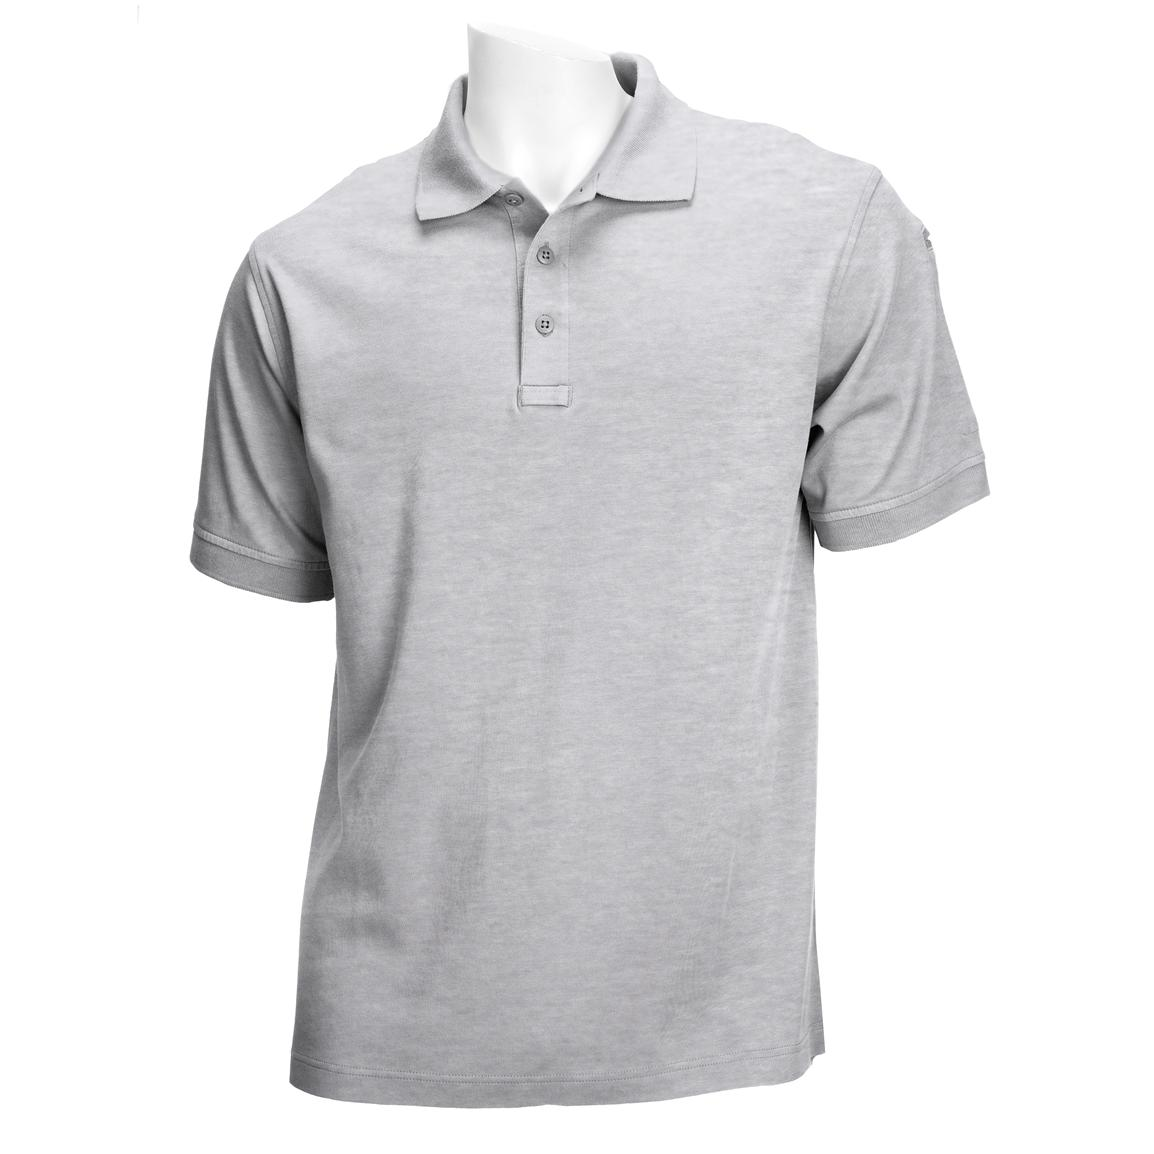 Tactical Jersey Polo from 5.11 Tactical, Heather Grey